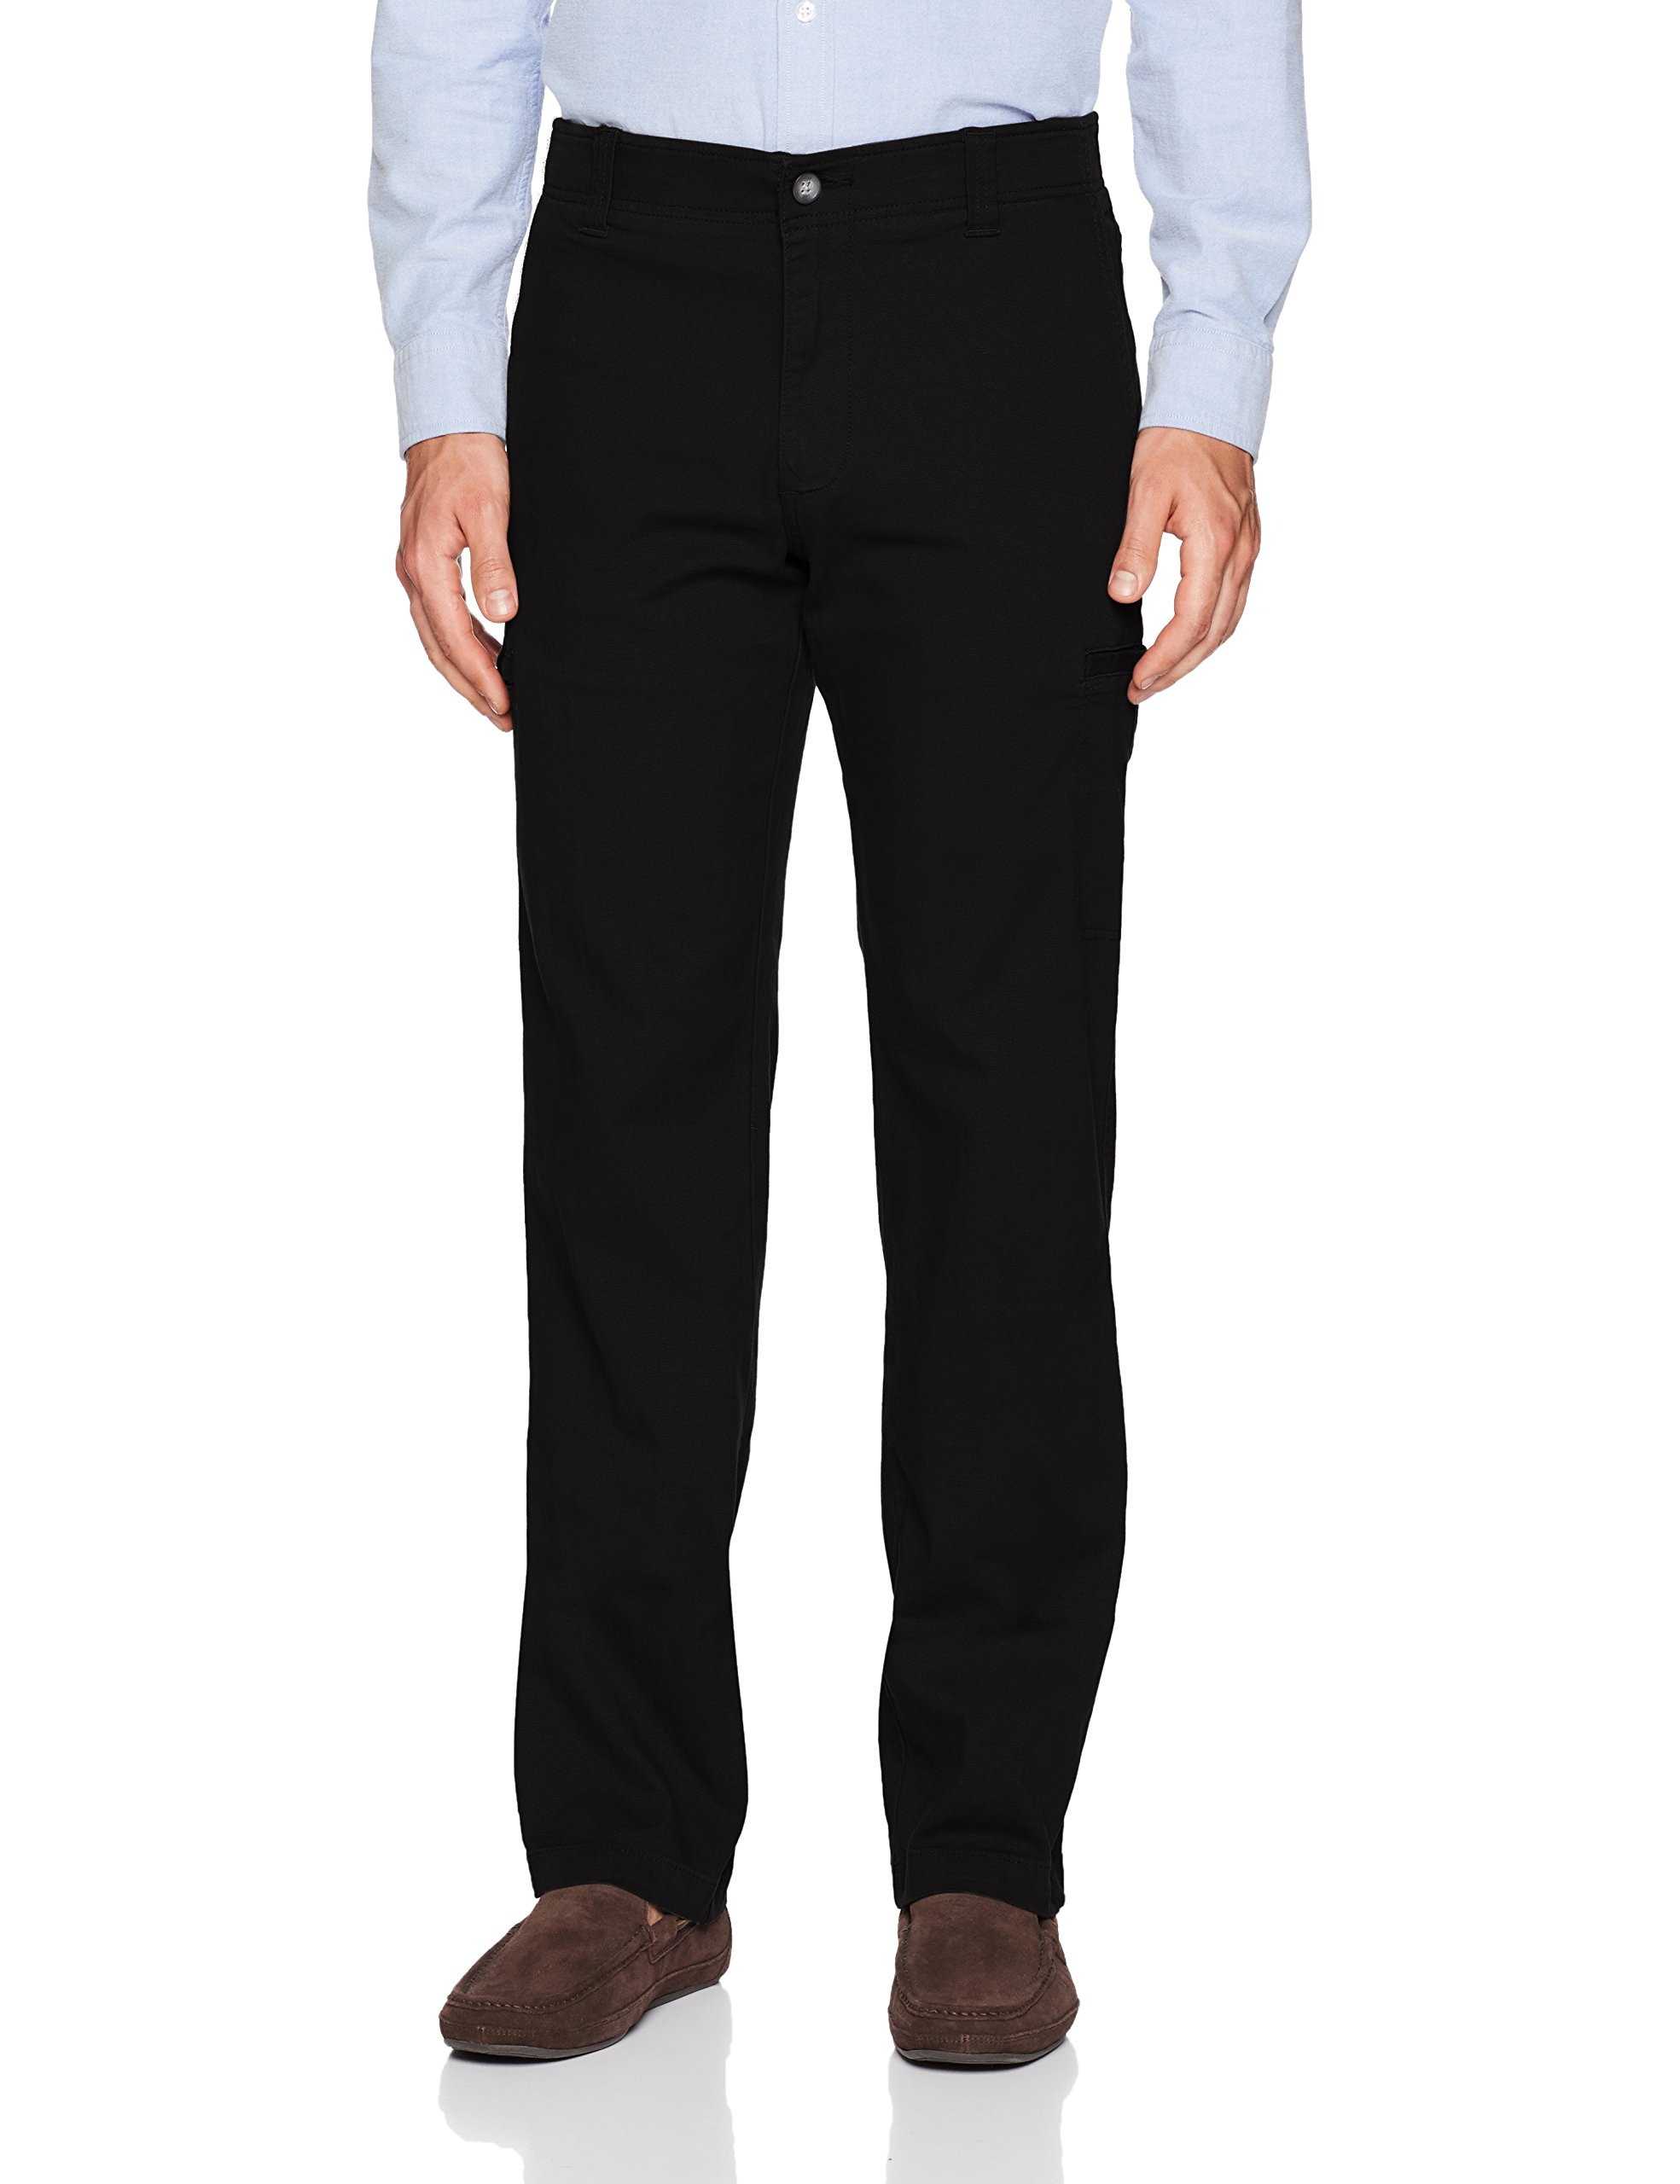 LEE Men's Performance Series Extreme Comfort Cargo Pant, Black, 34W x 32L